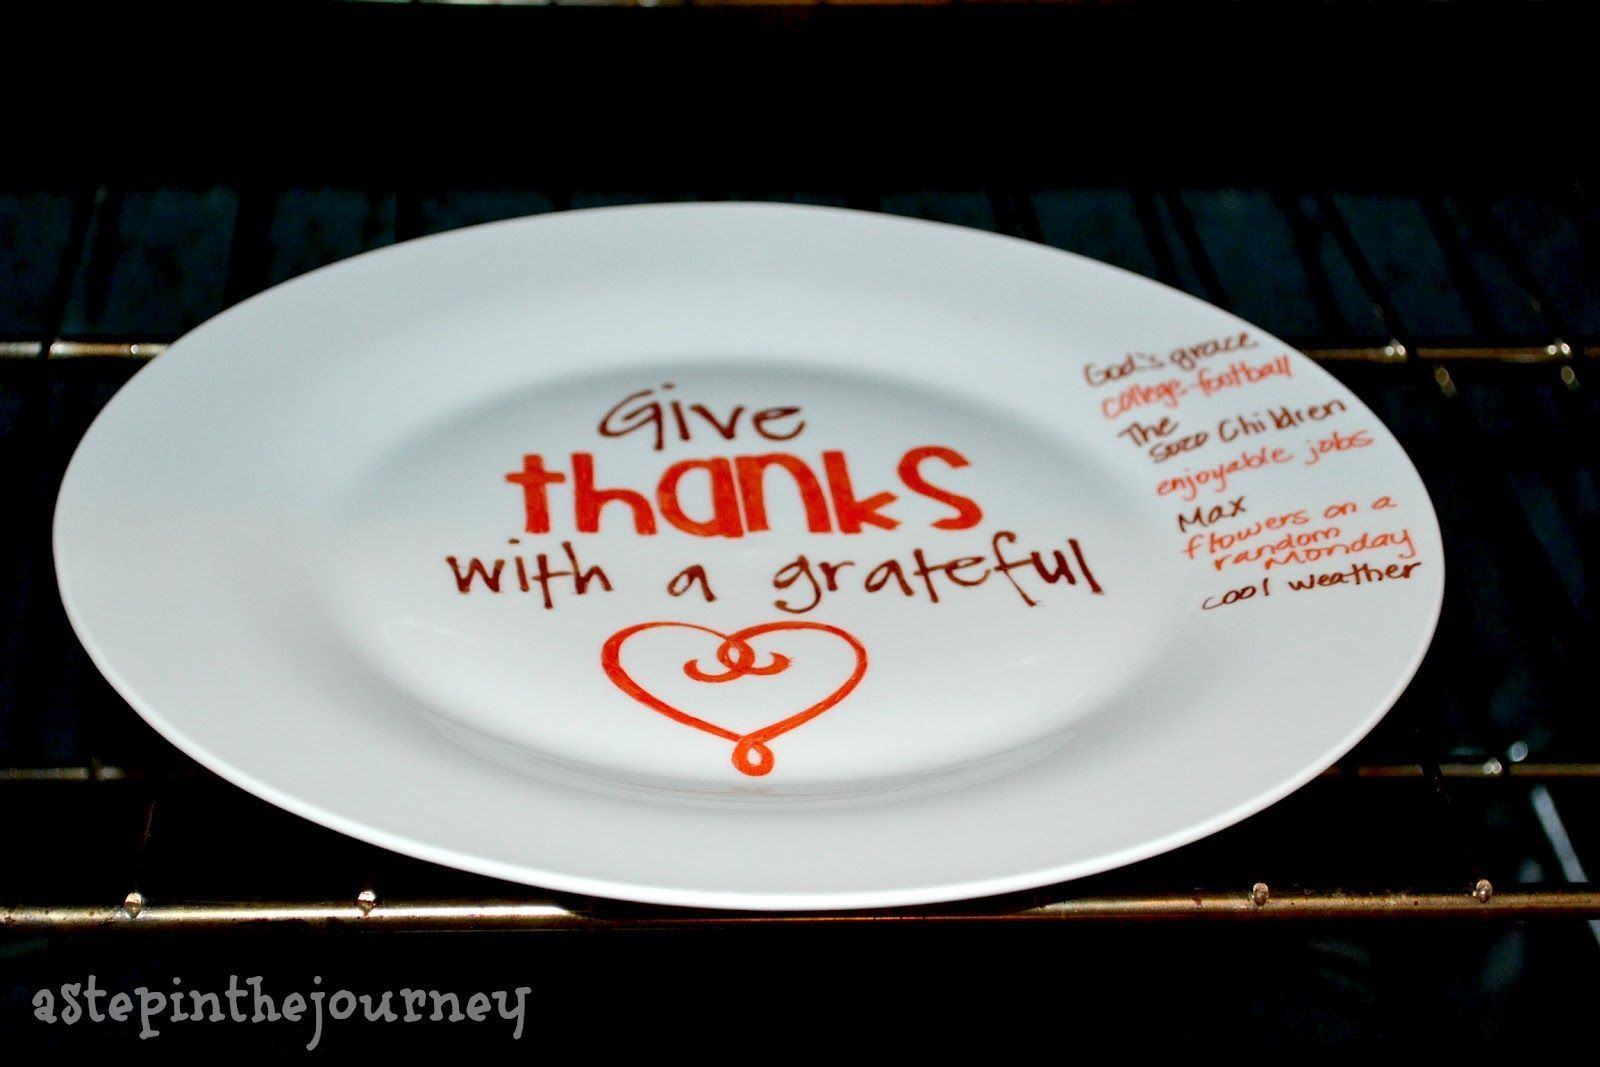 Give Thanks #sharpieplates Give Thanks | A Sharpie Plate #sharpieplates Give Thanks #sharpieplates Give Thanks | A Sharpie Plate #sharpieplates